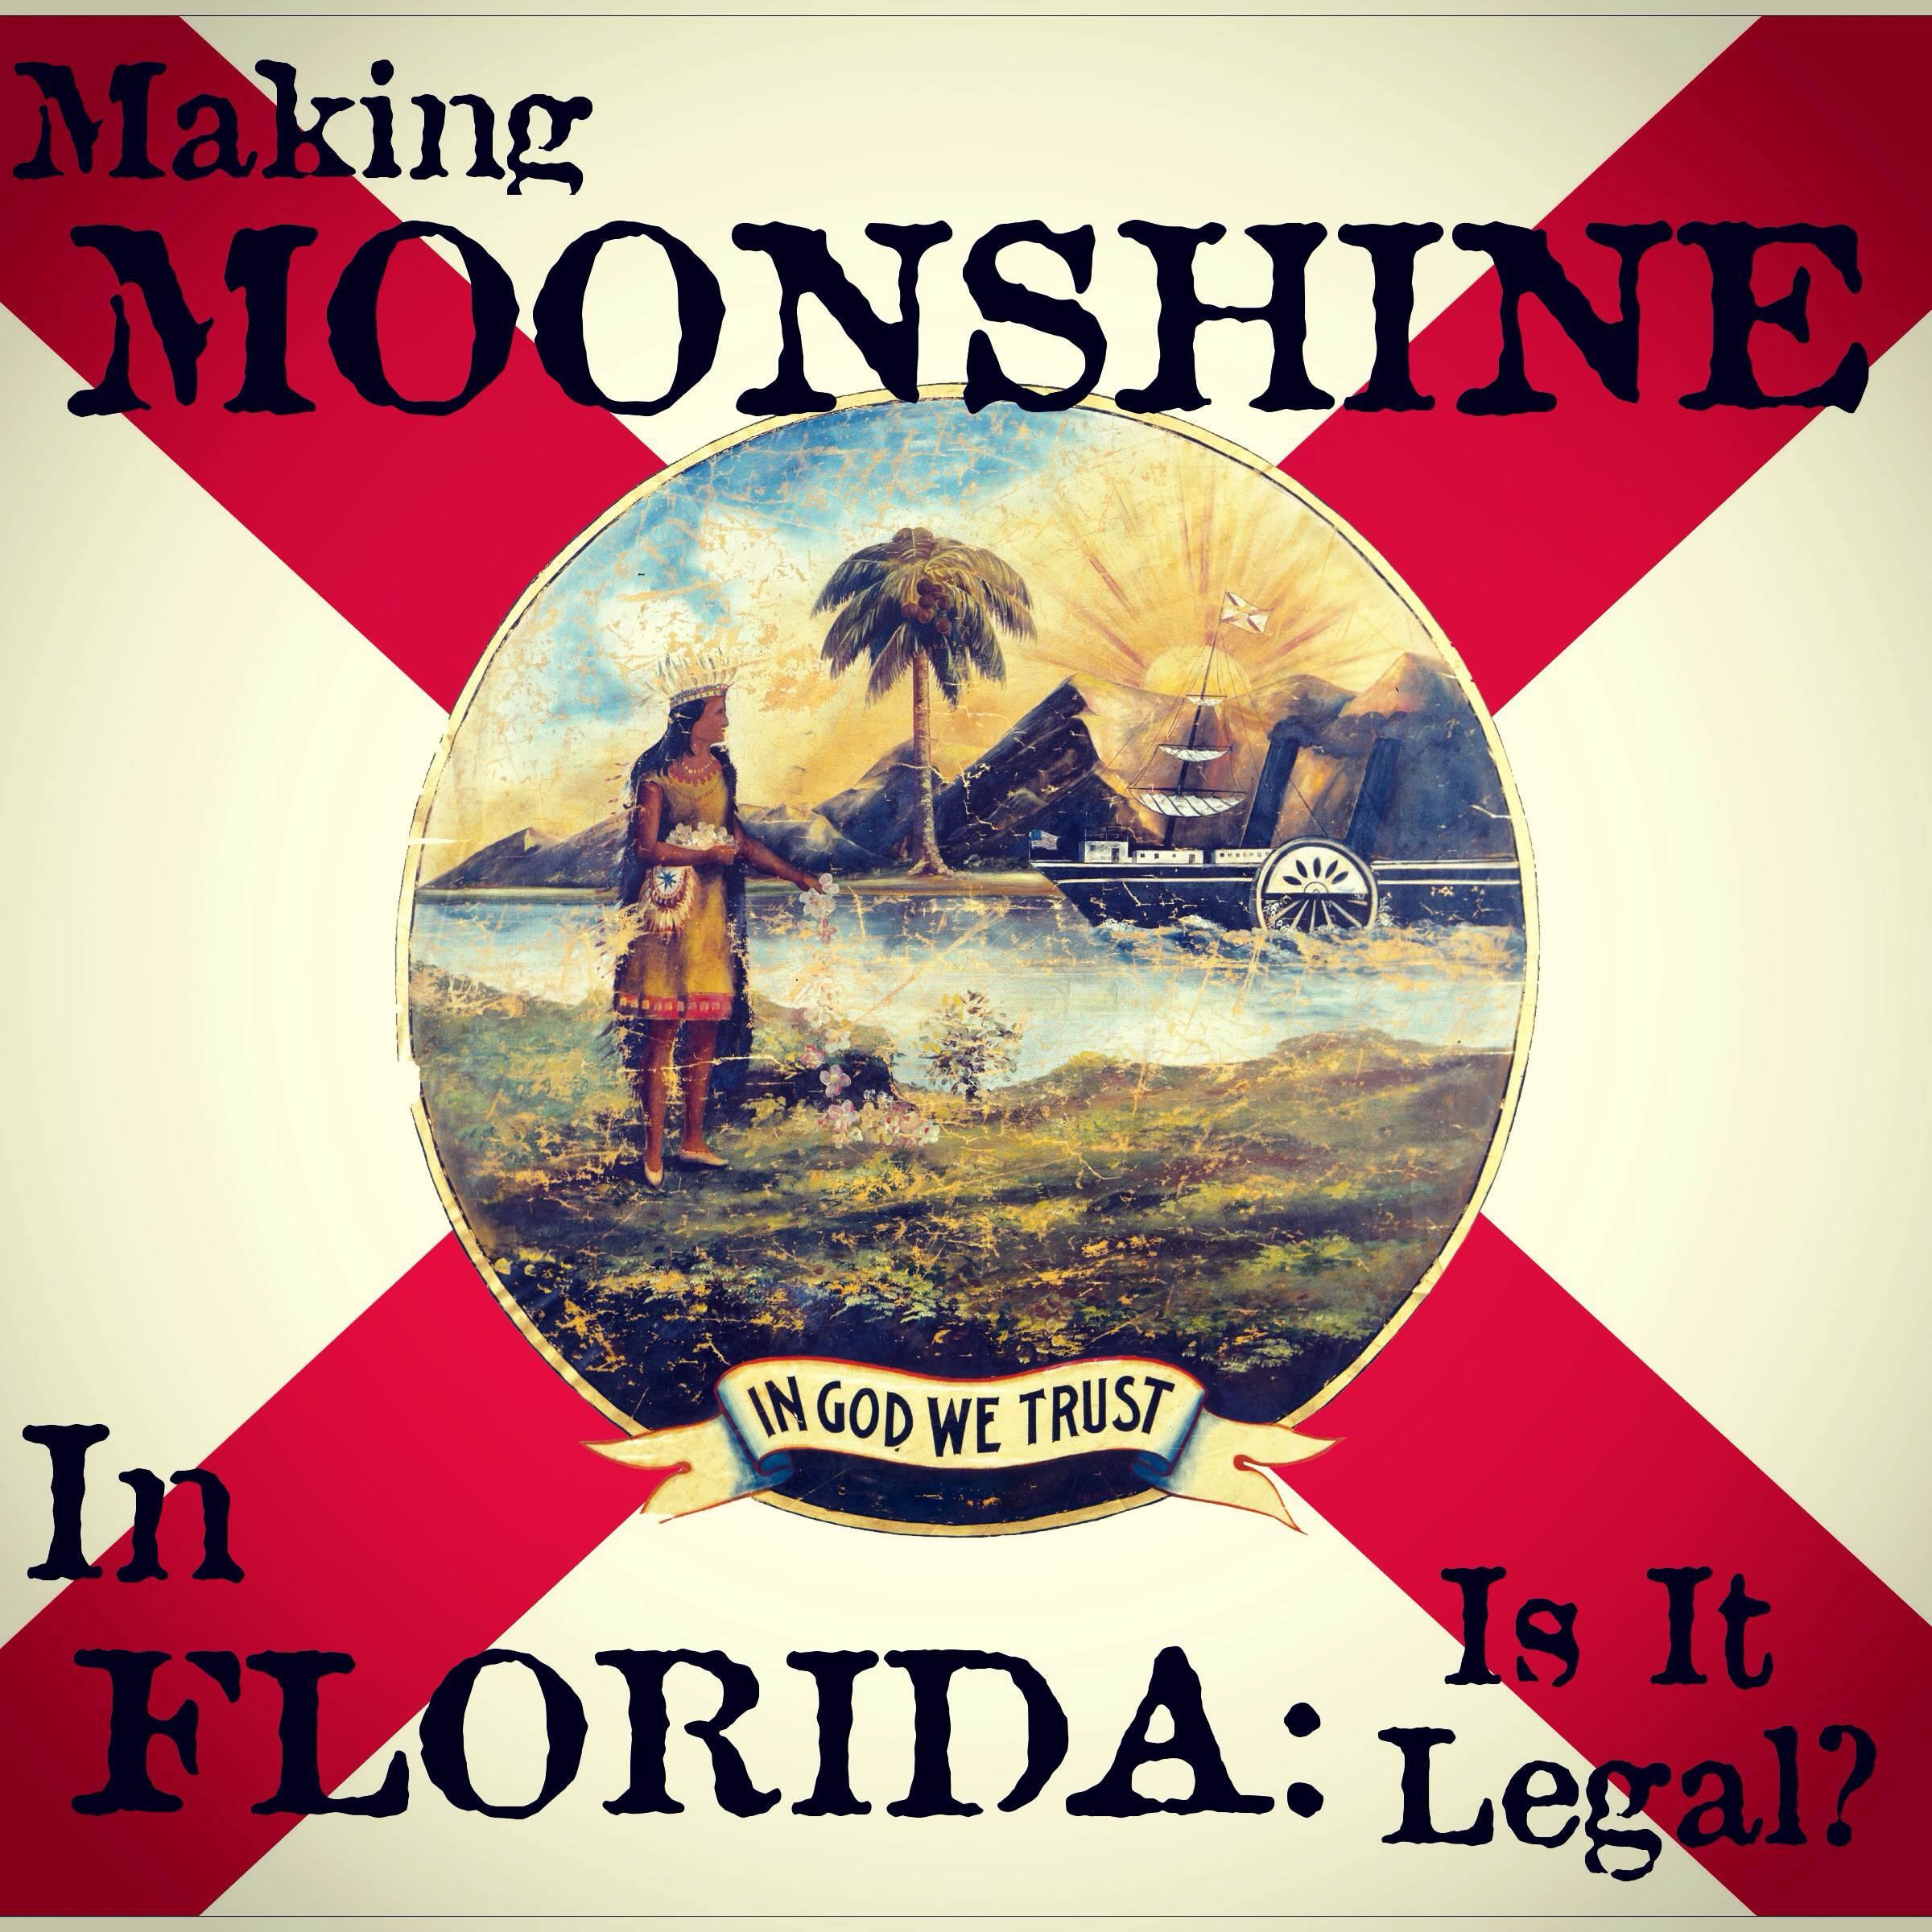 Home Distilling Laws: Is It Illegal To Make Moonshine in Florida